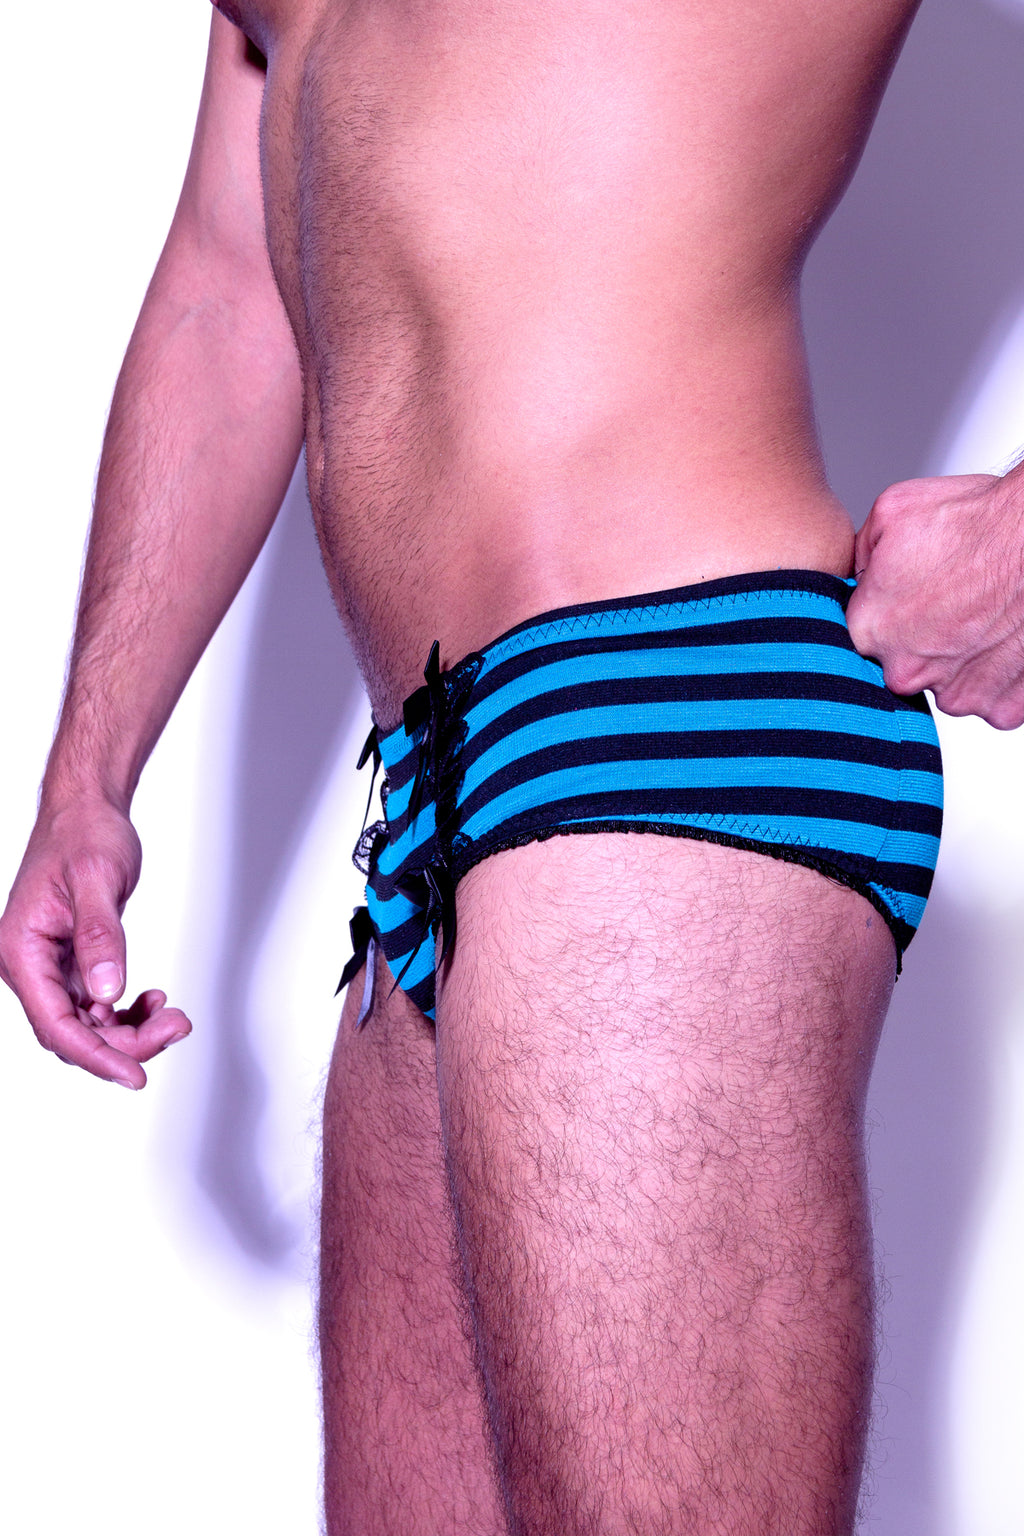 Fatale mens panties. Cross dress in style. Made in Los Angeles